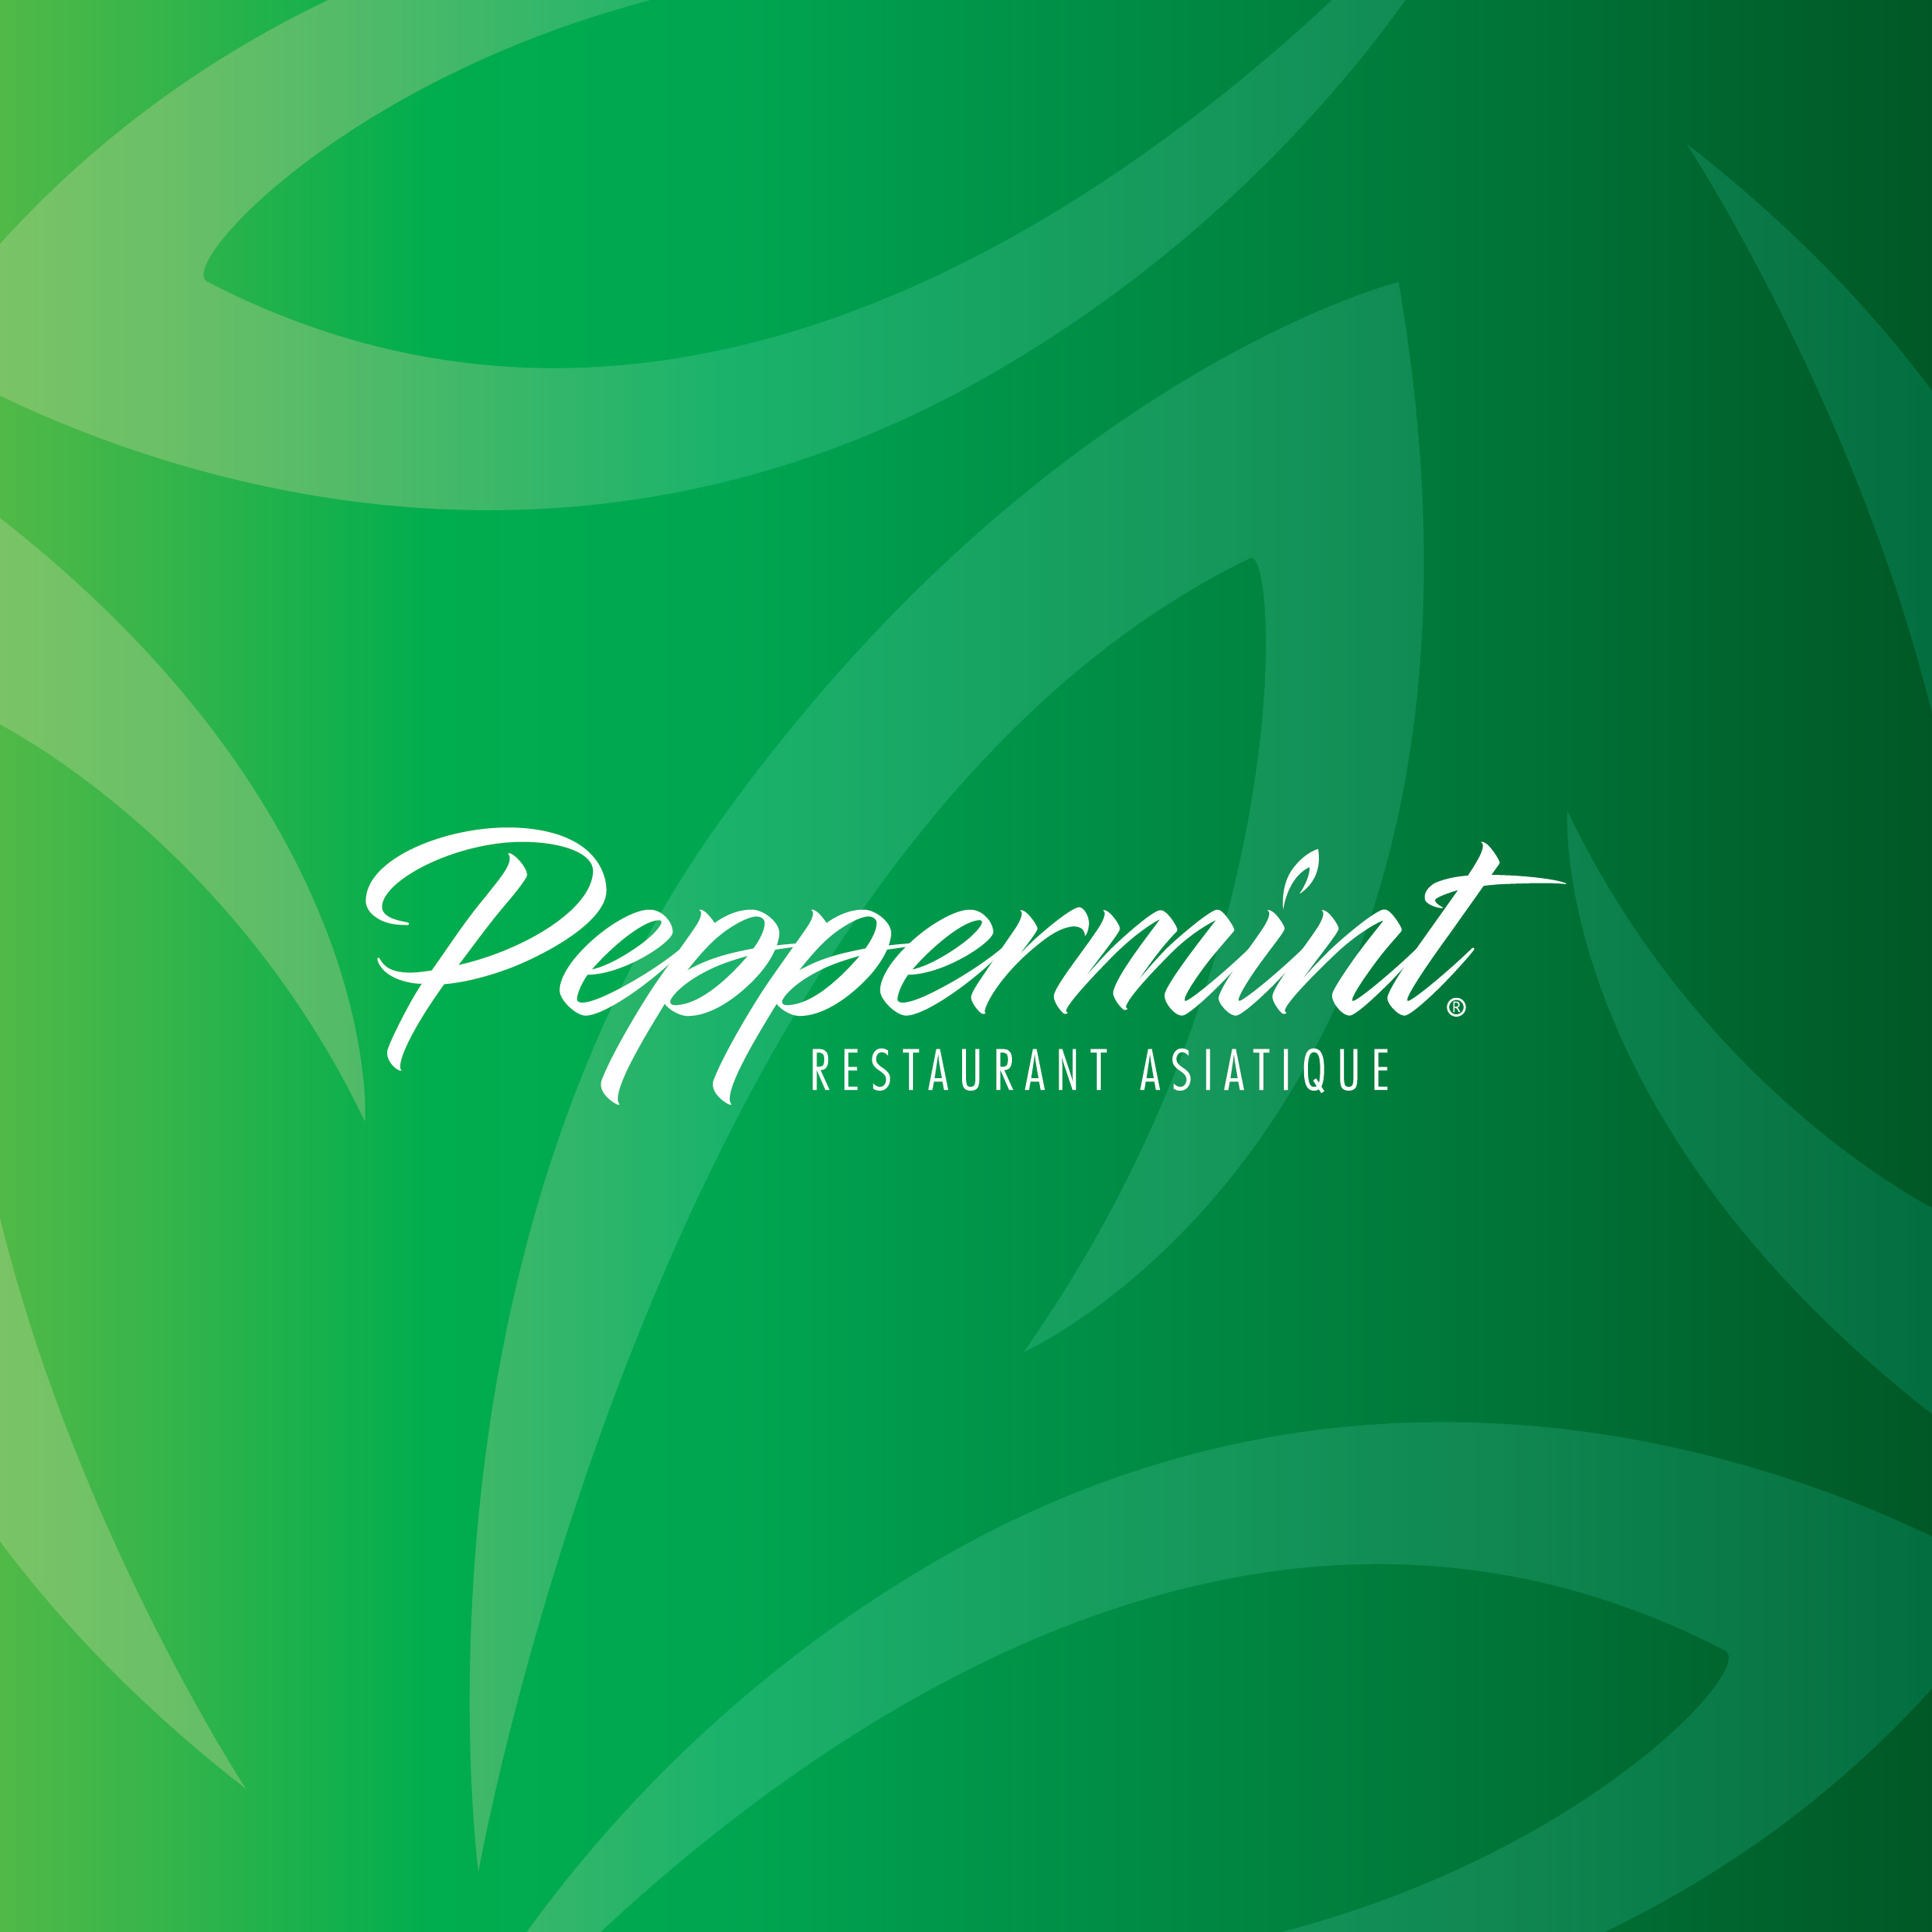 CARTE PEPPERMINT 2019_AP-01